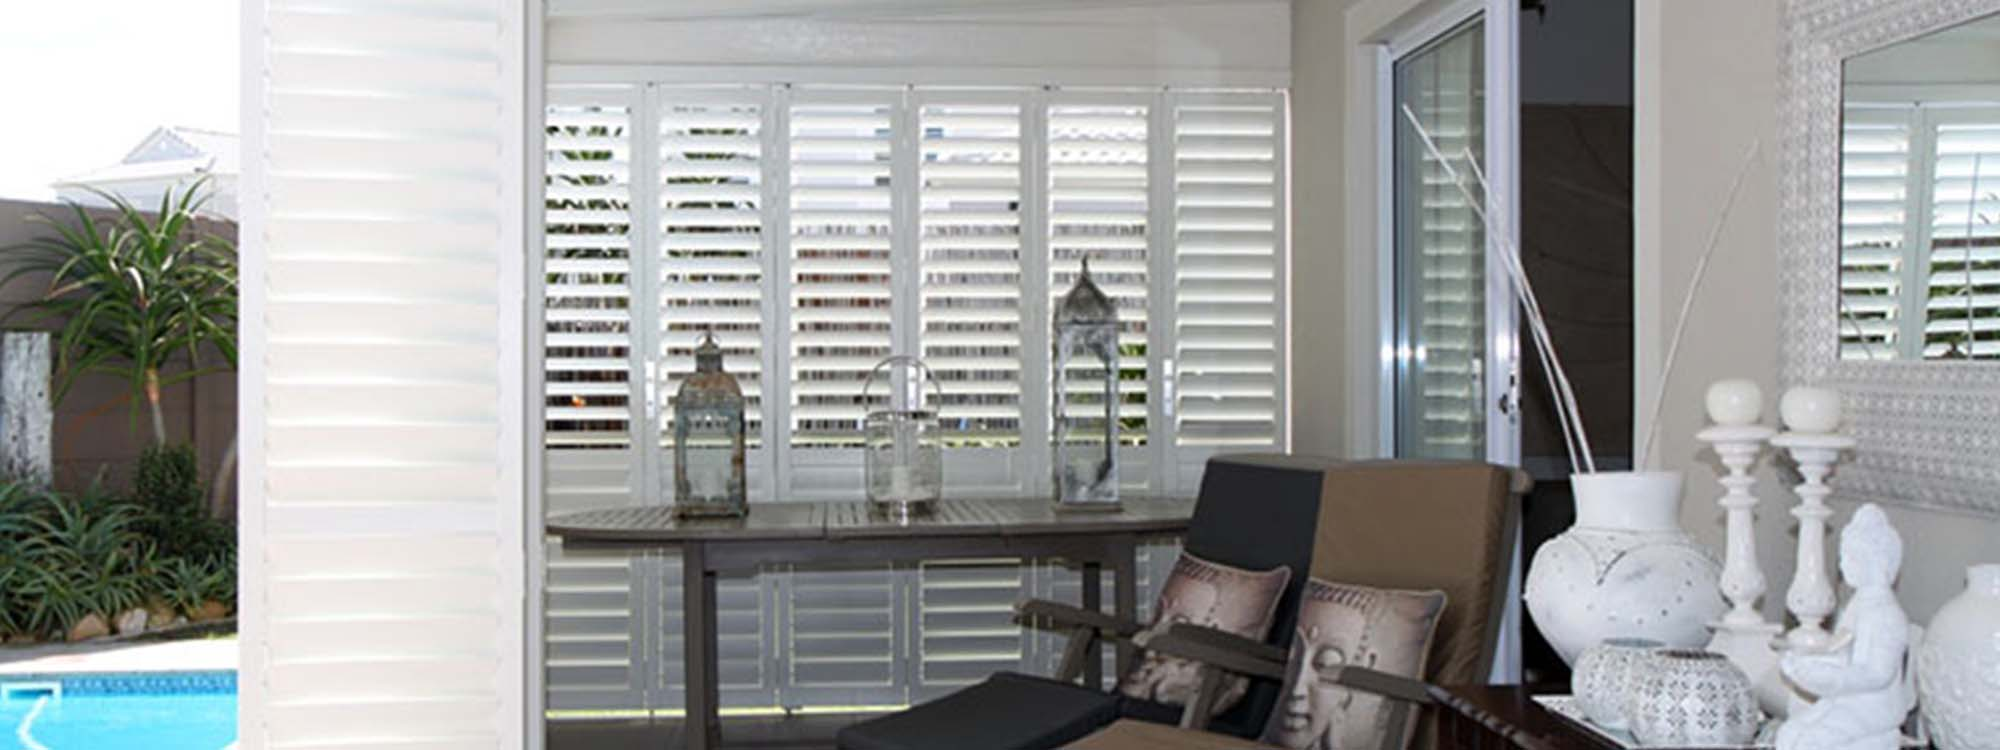 Security-shutters-patio-lounge